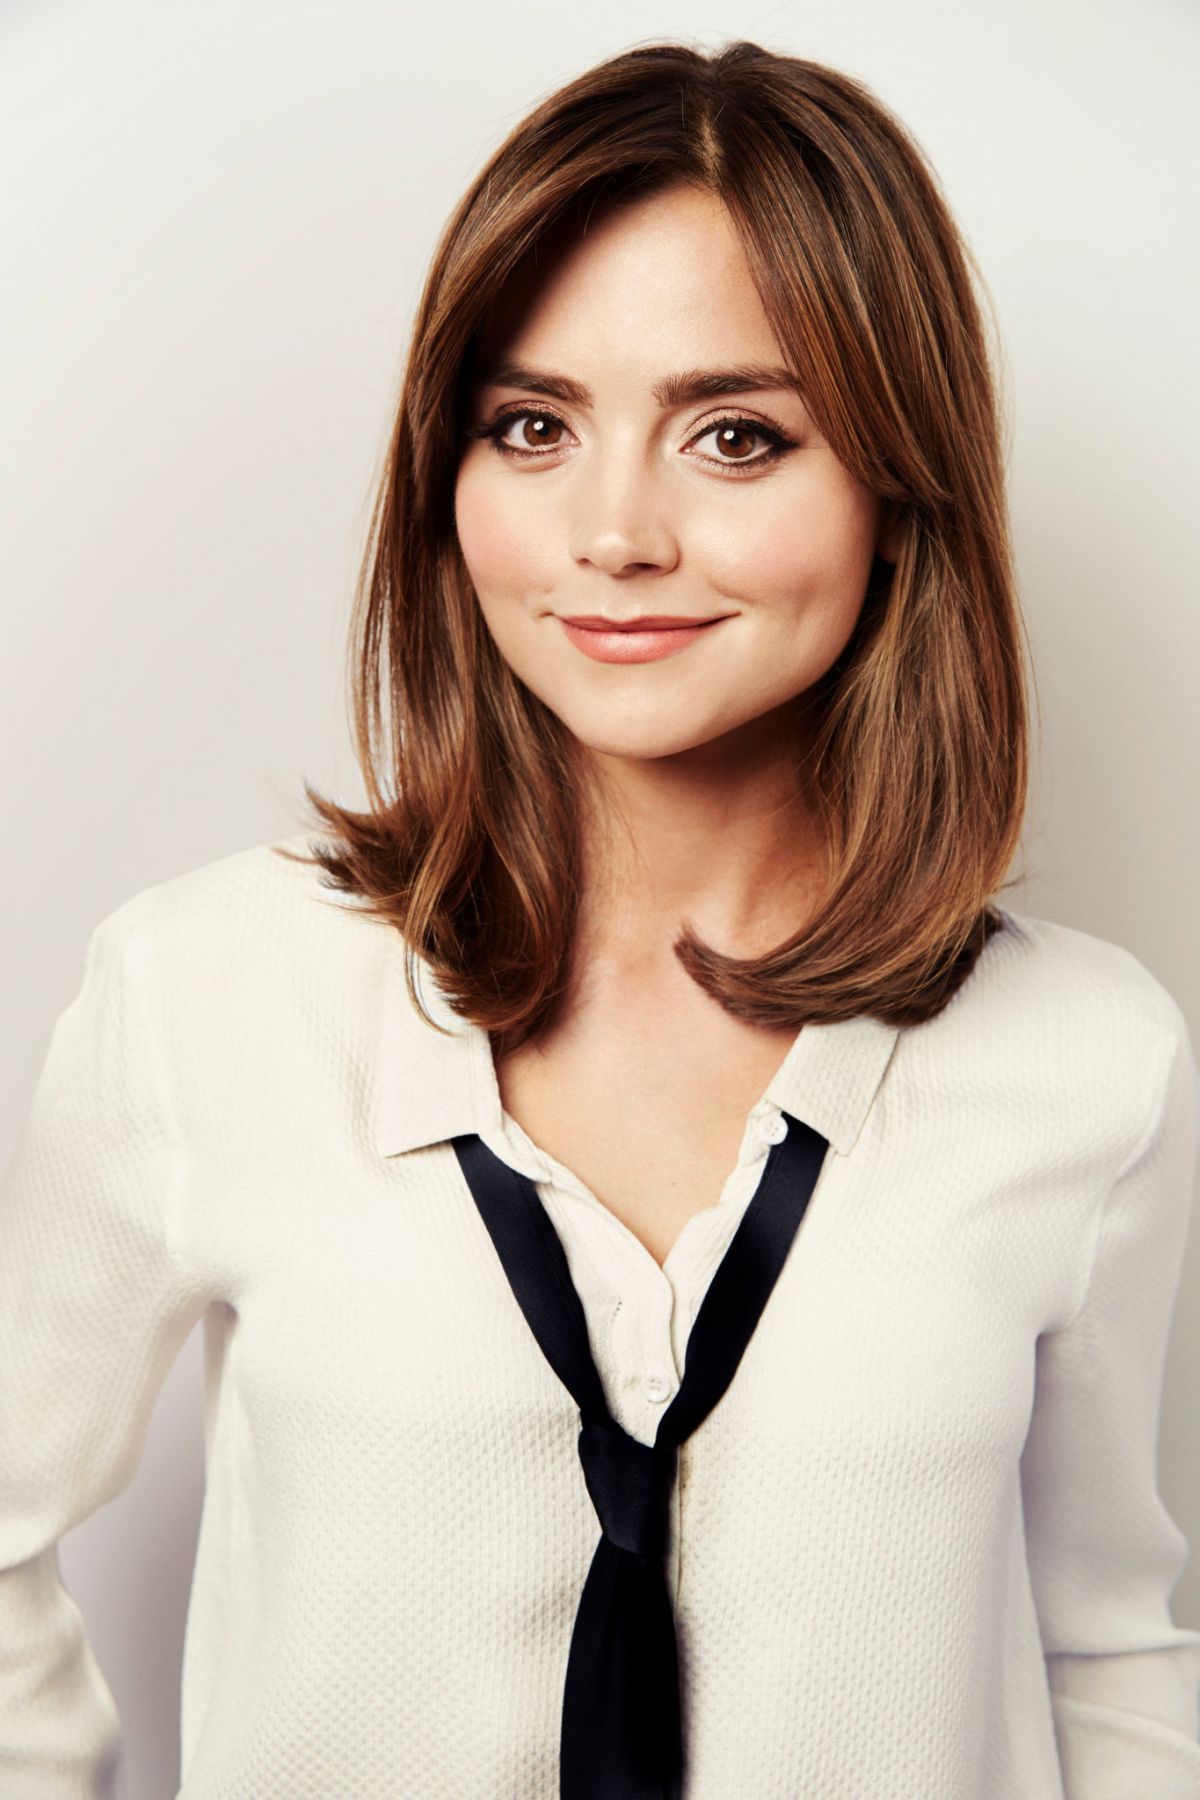 Jenna Coleman Leaving Doctor Who—Yes, the Rumors Are True